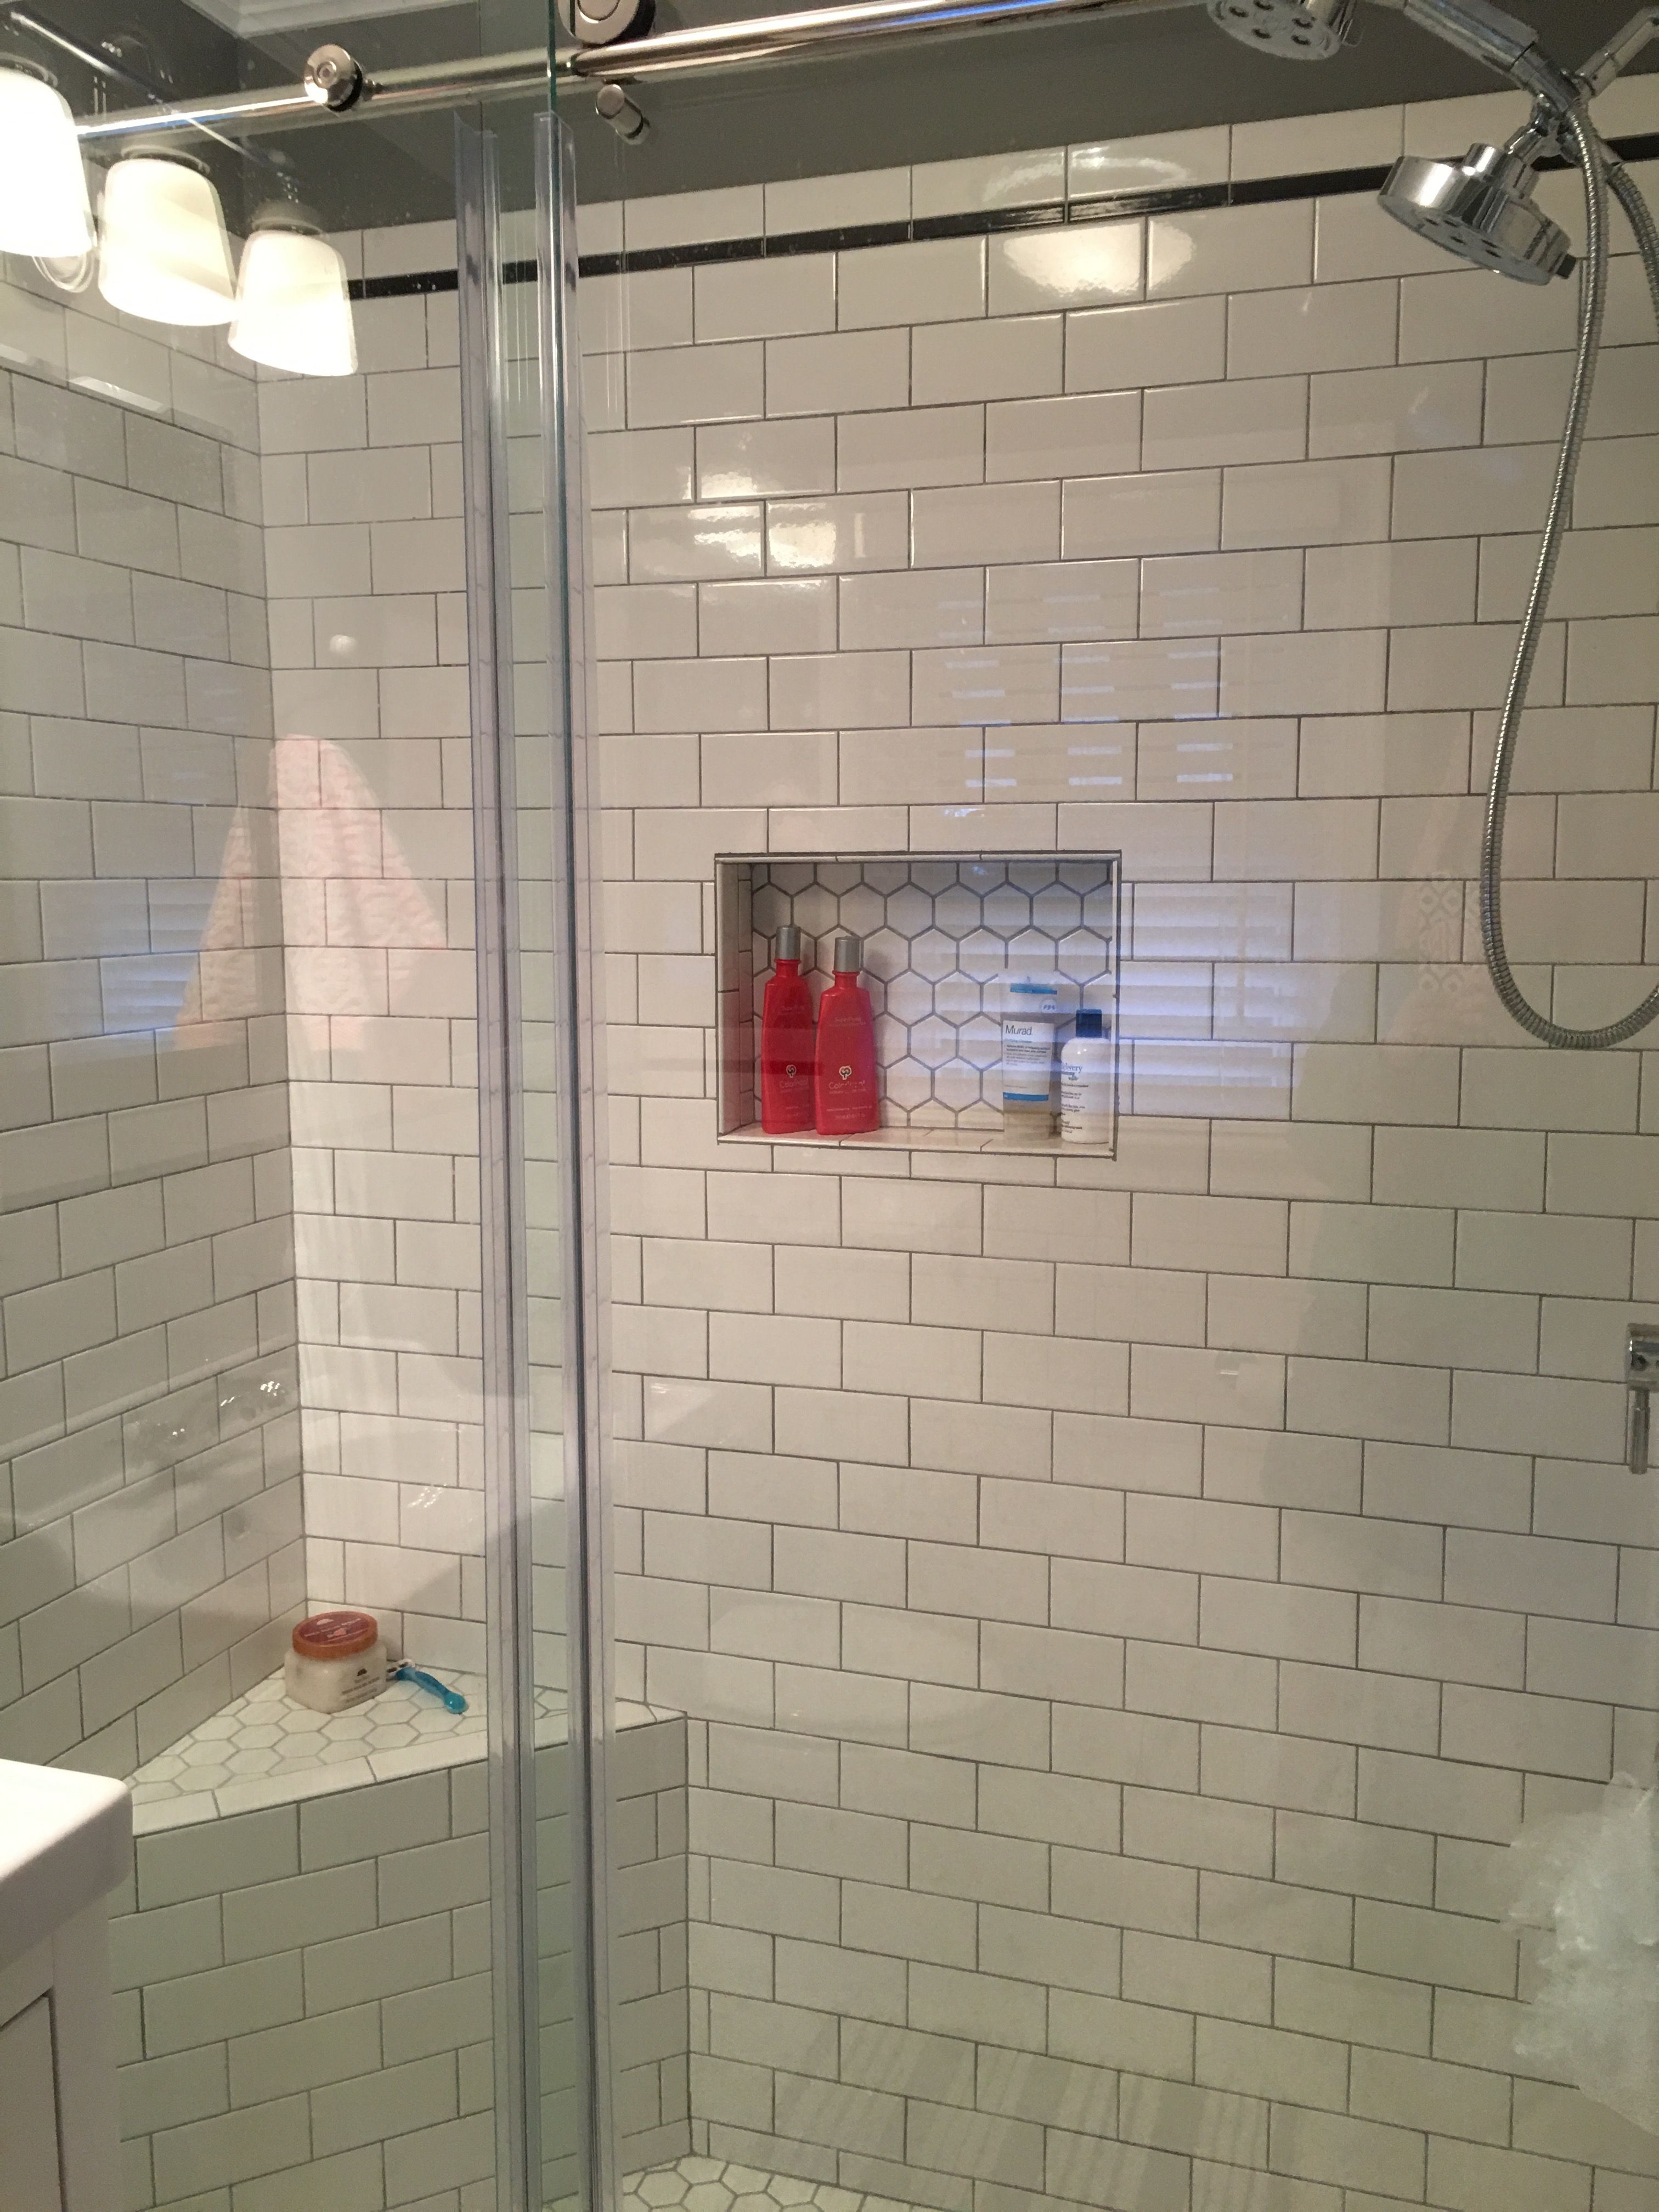 Subway tile and 2 in hex tile on the floor Delorean grey grout and